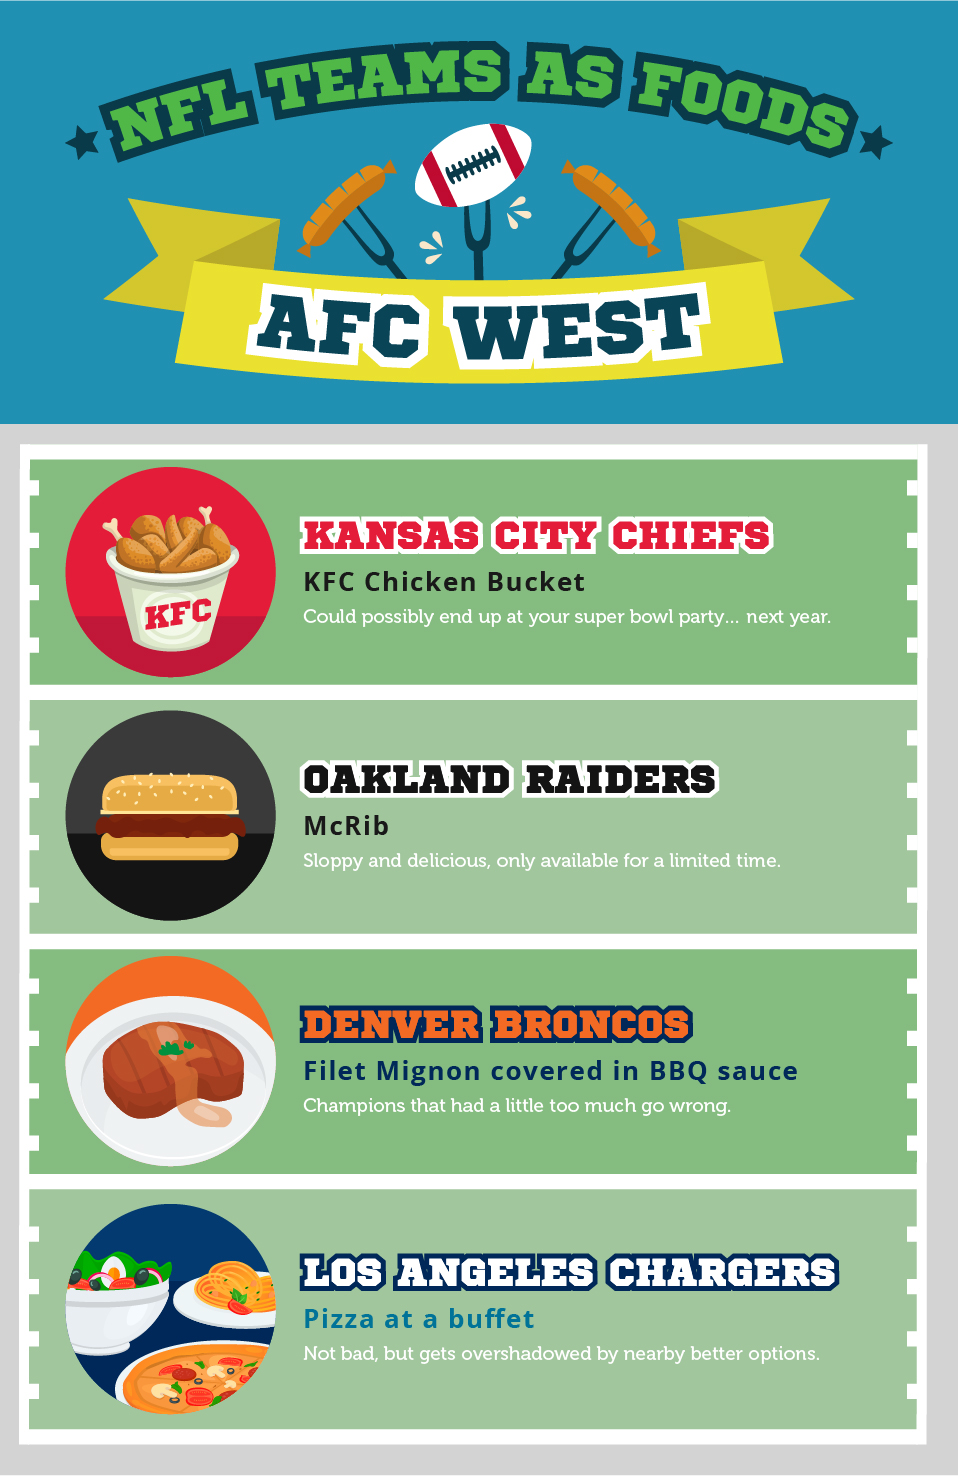 NFL Teams as Food: AFC West